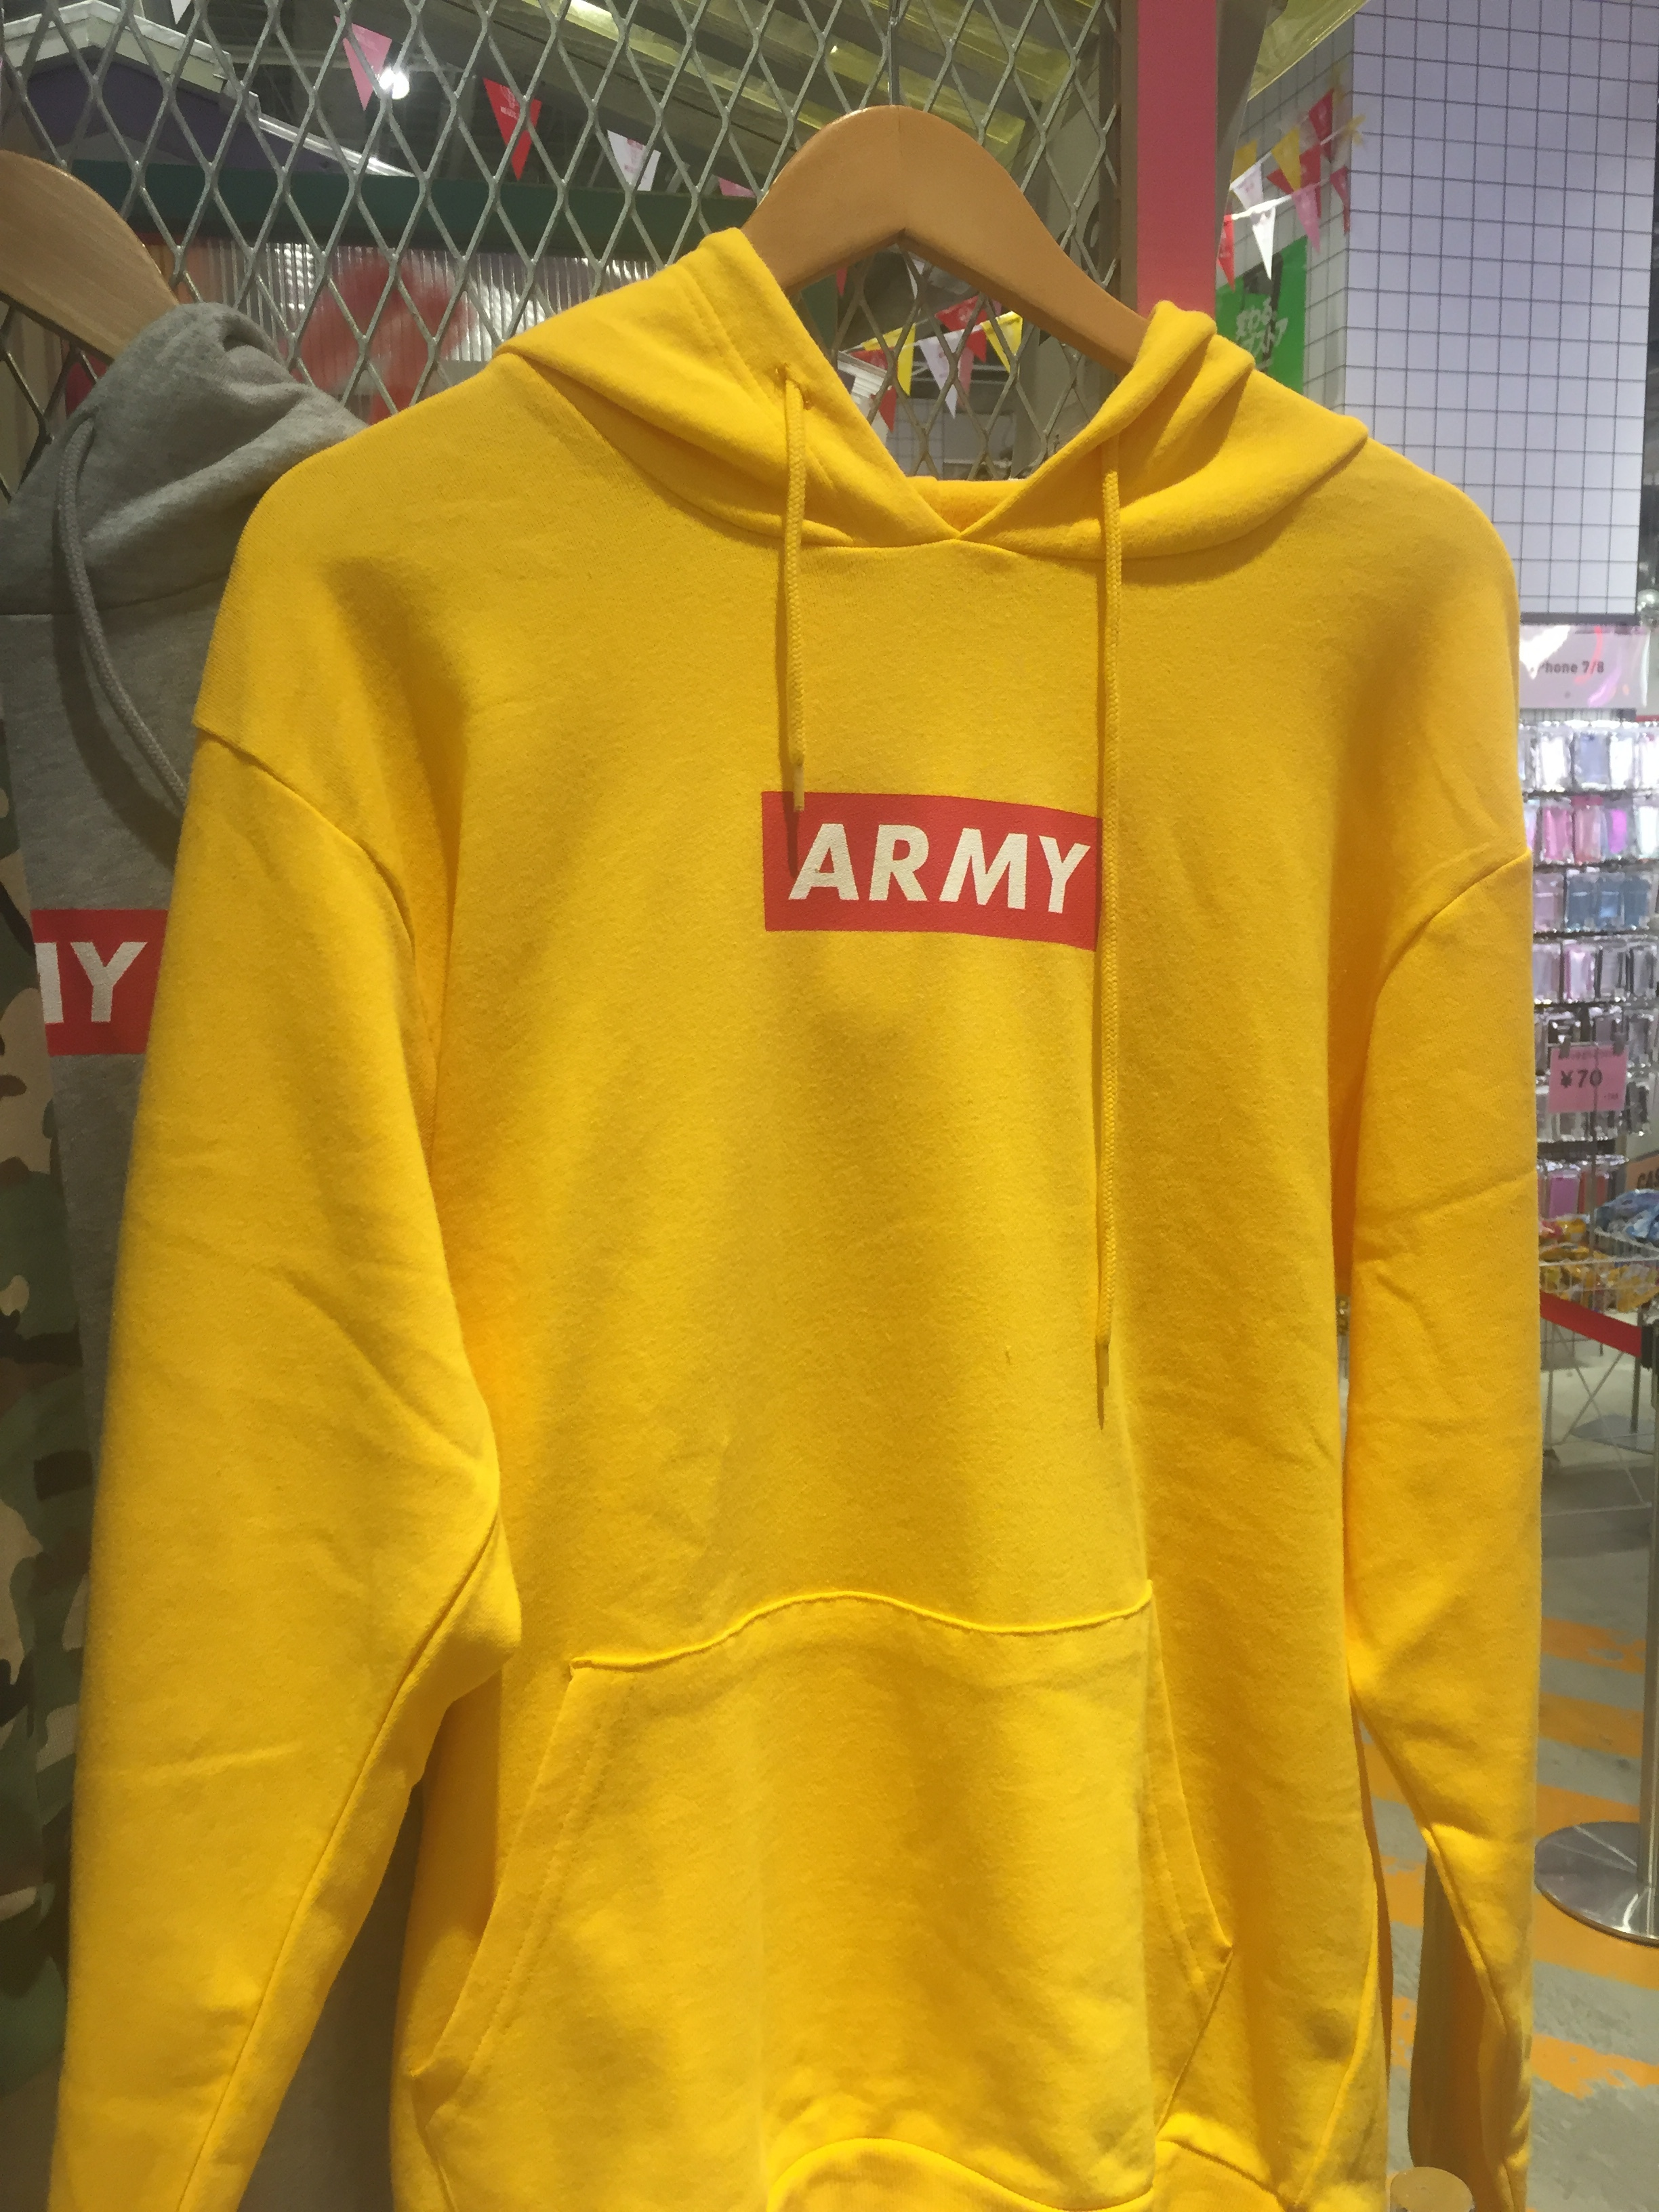 probably not the actual army.JPG